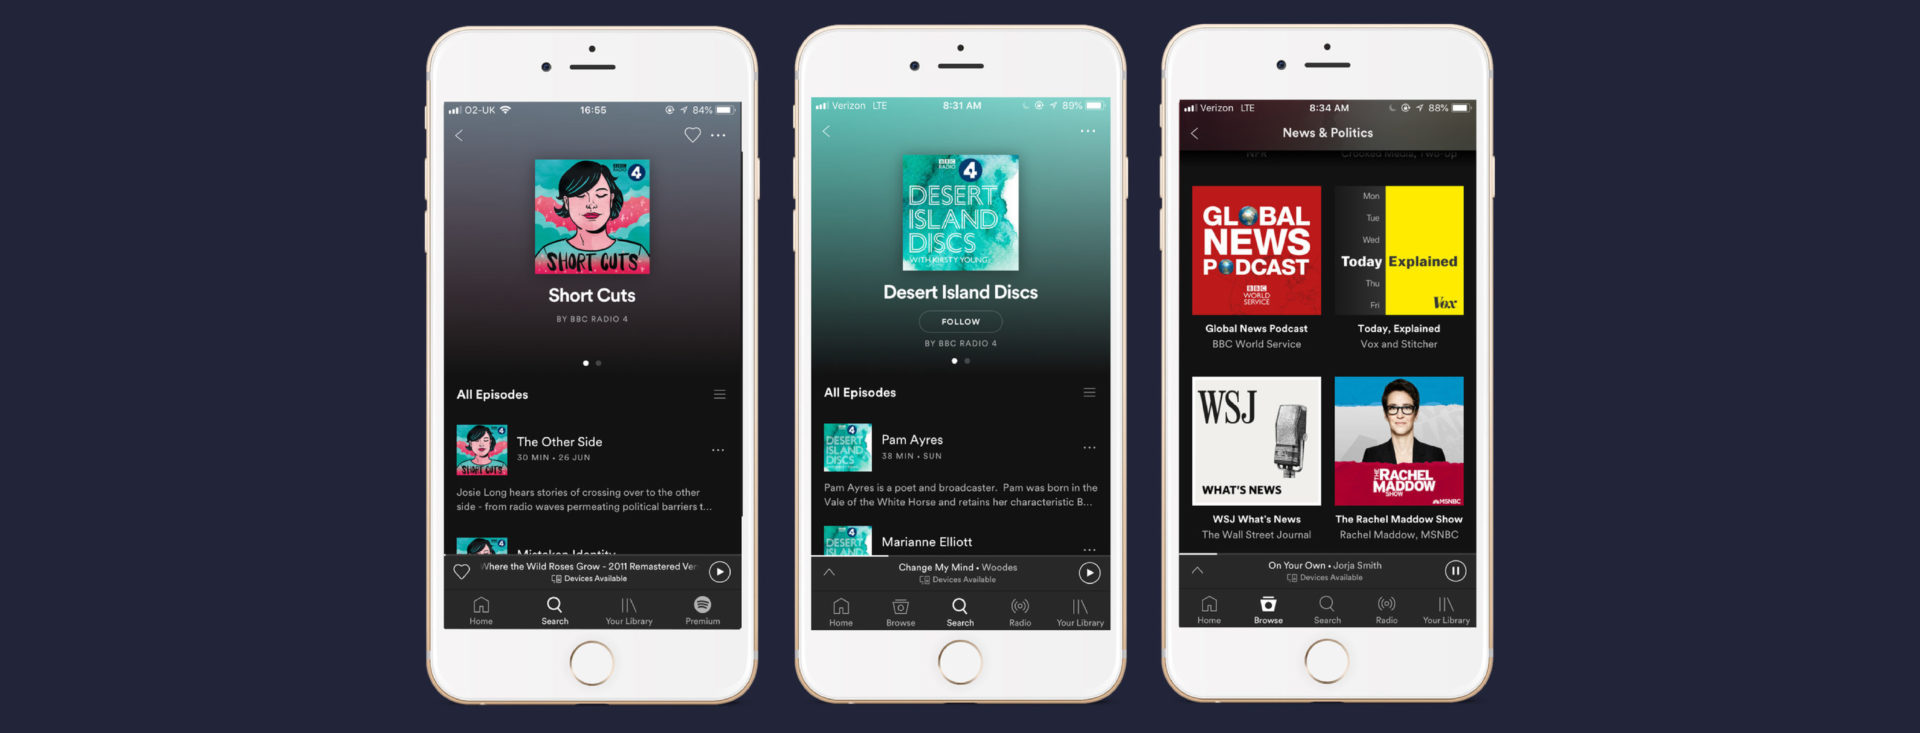 Your Favourite BBC Podcasts, Now on Spotify in the UK — Spotify